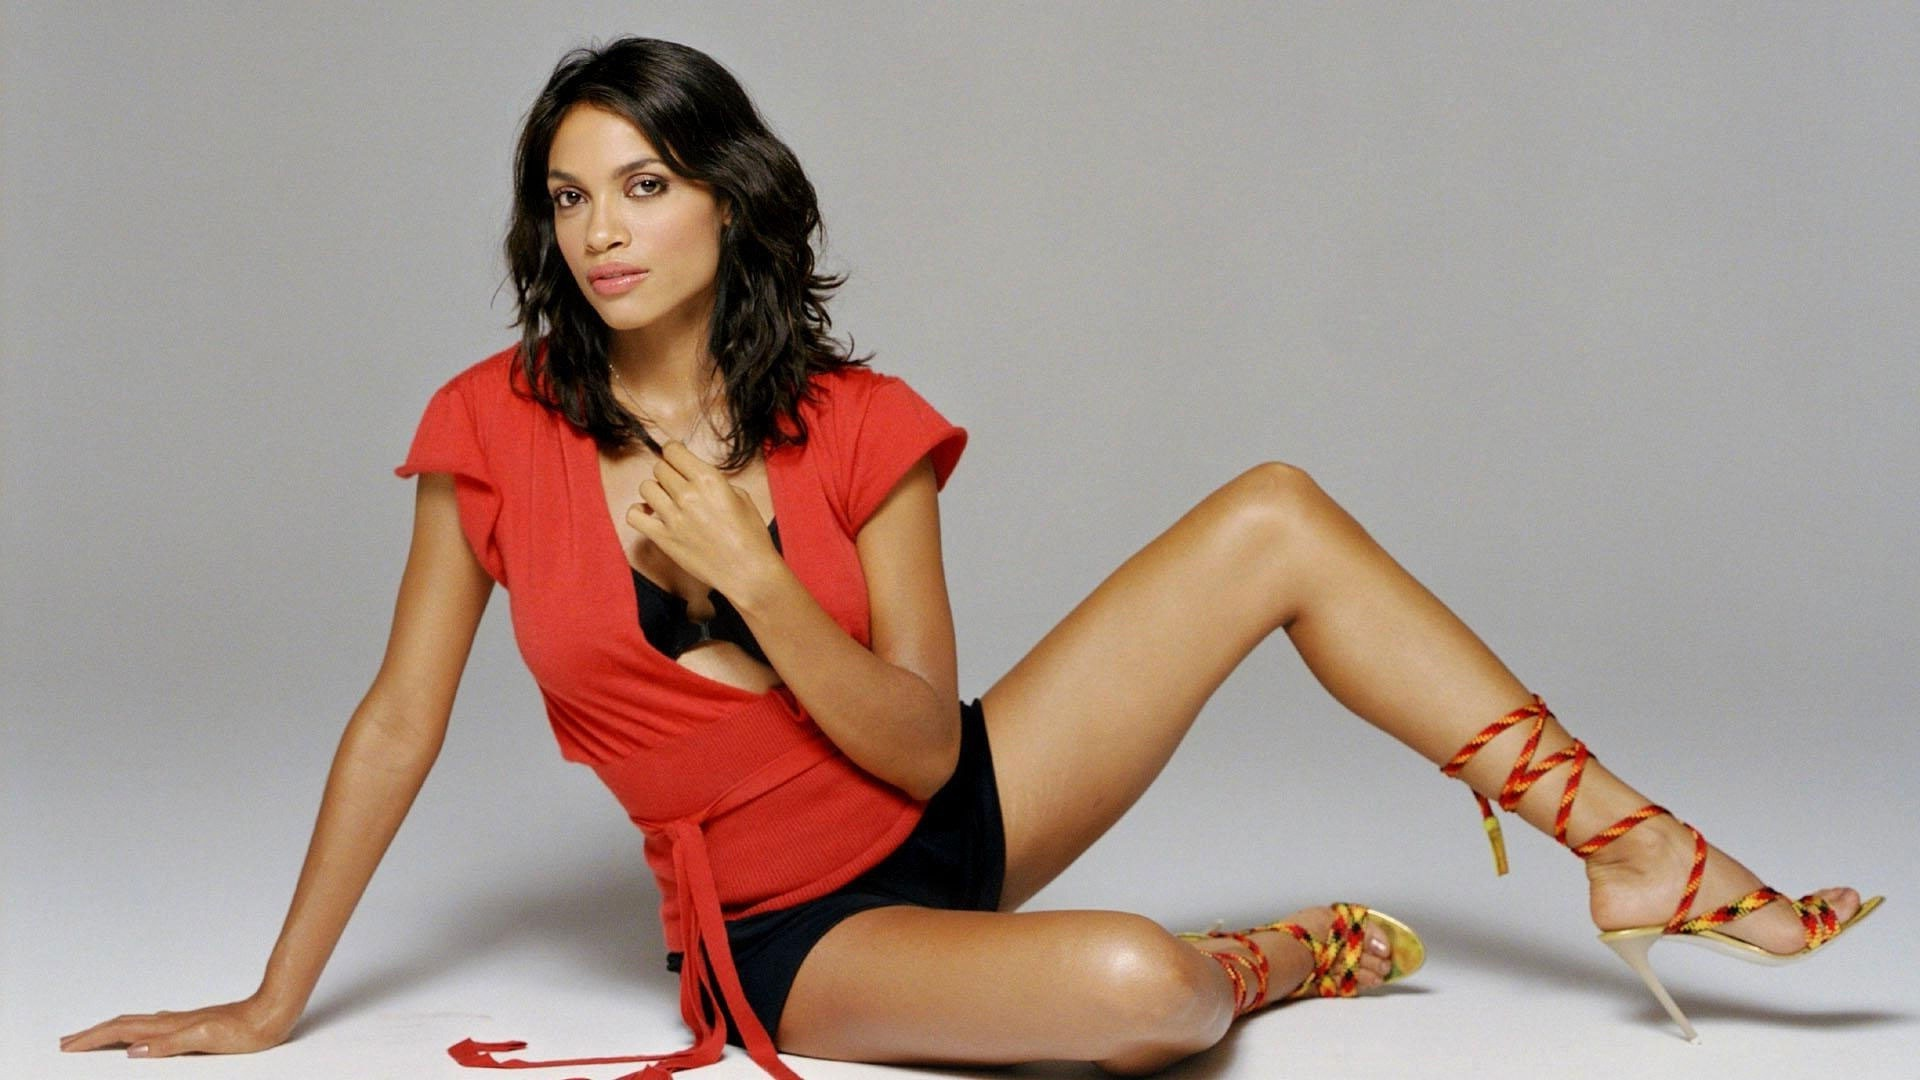 Rosario Dawson Wallpapers High Resolution and Quality Download Rosario Dawson